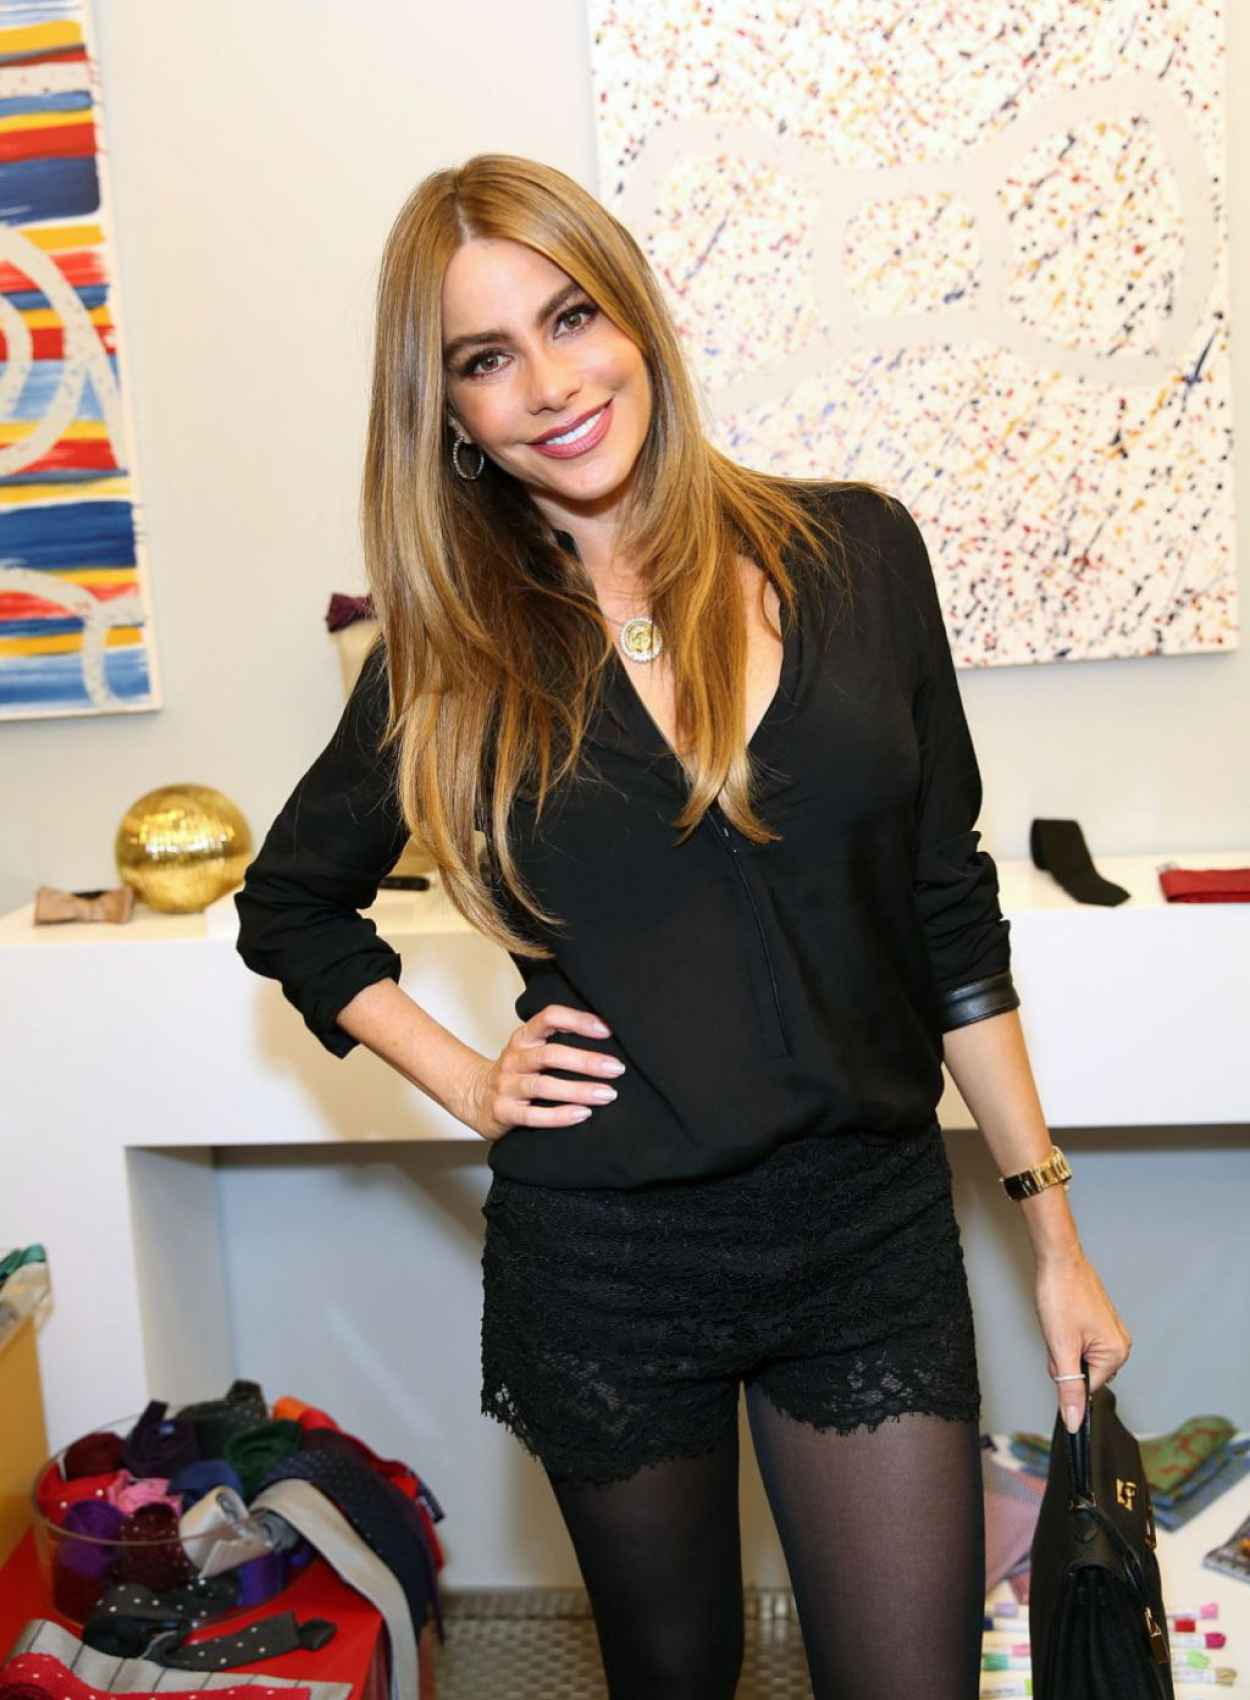 Sofia Vergara at Tie The Knot Pop-Up Store (Beverly Center) in Los Angeles - December 2015-1